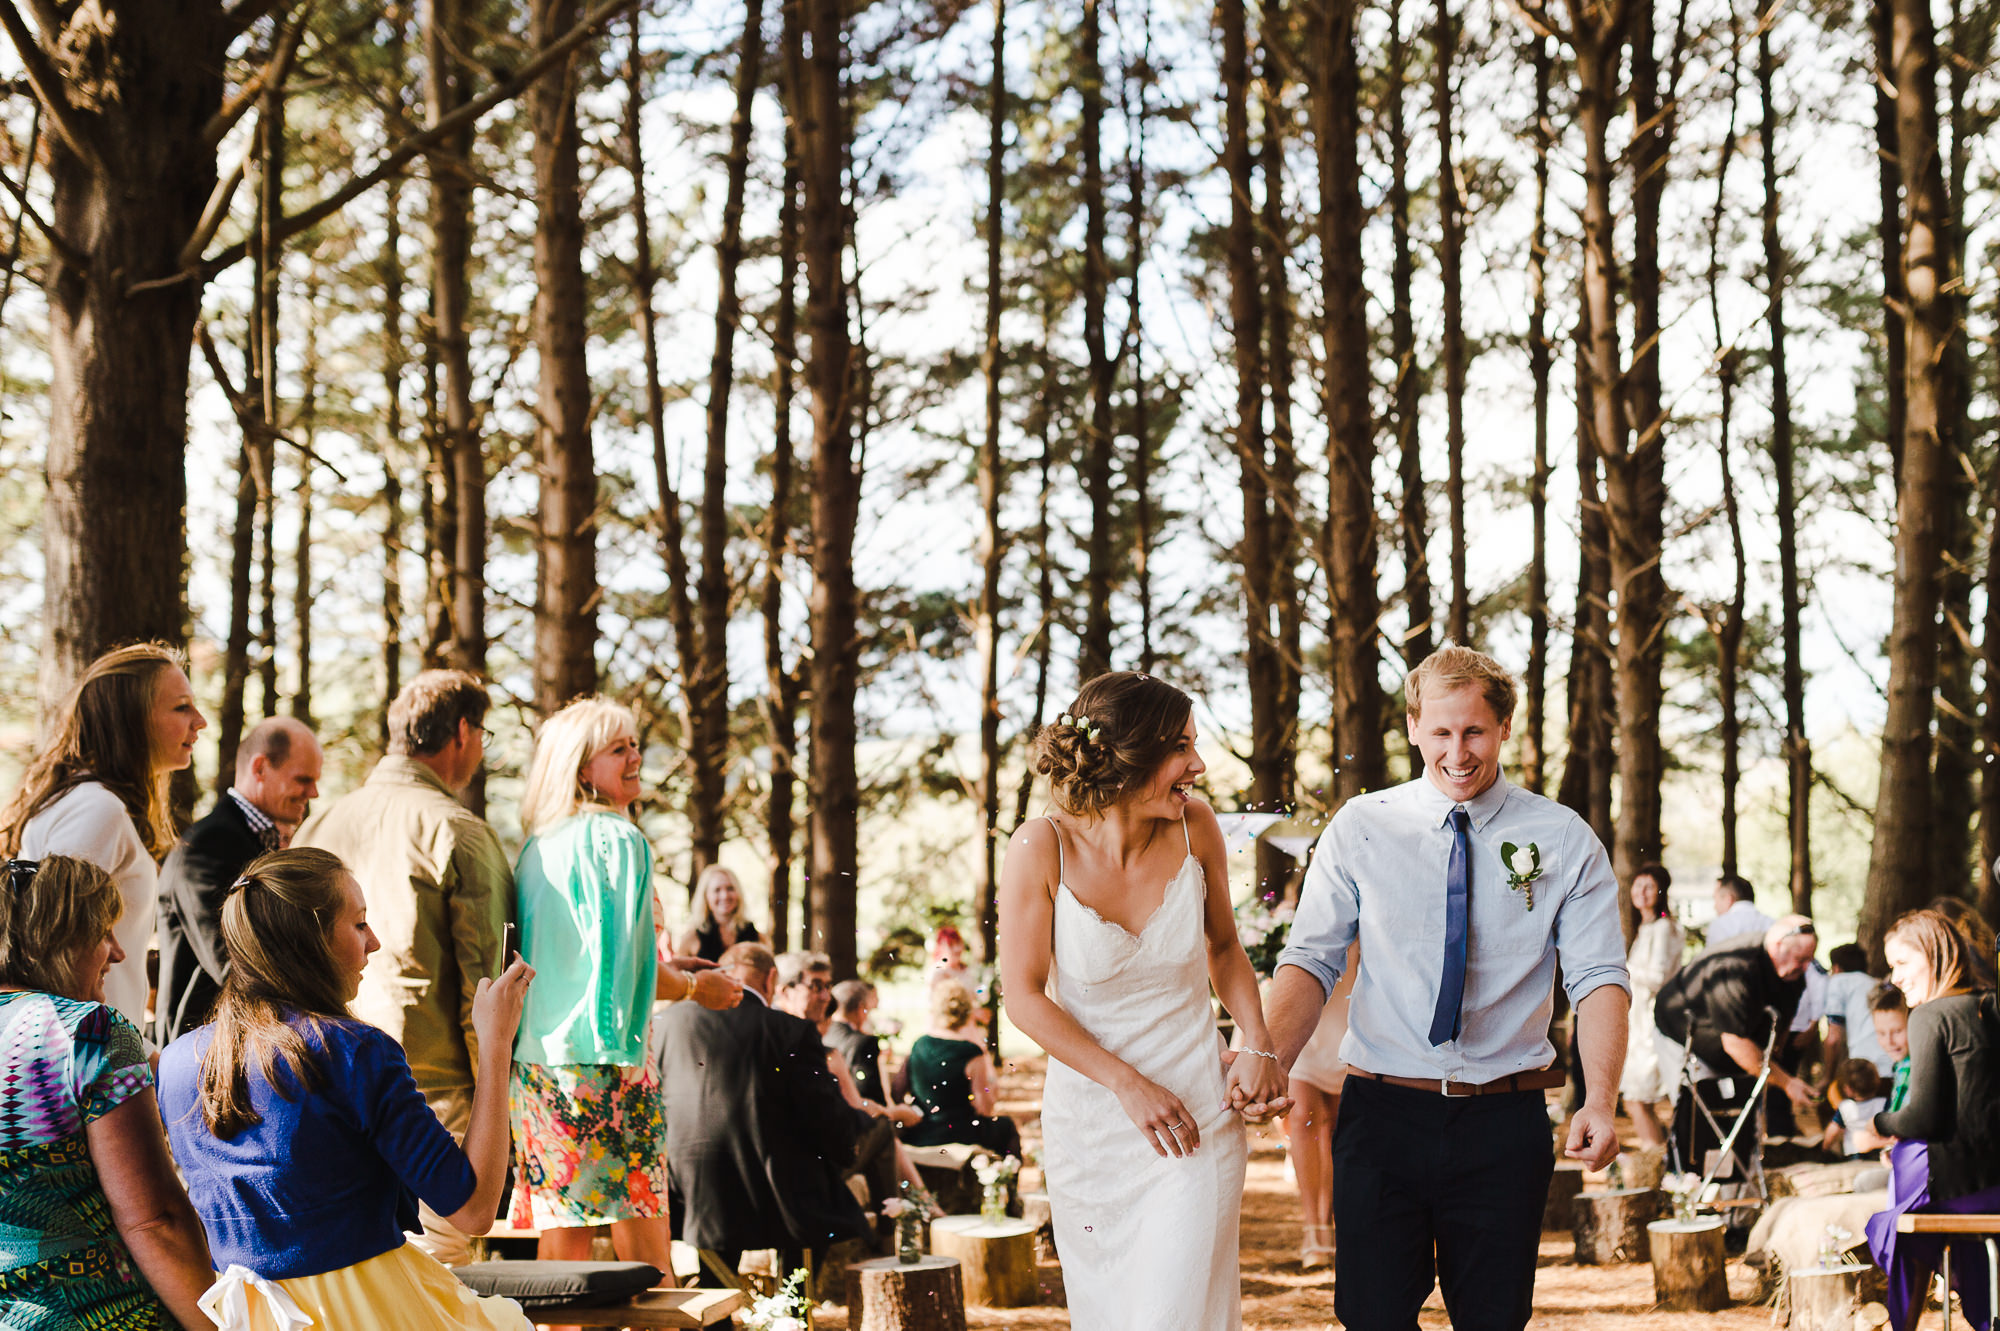 walking down aisle in forest married.jpg